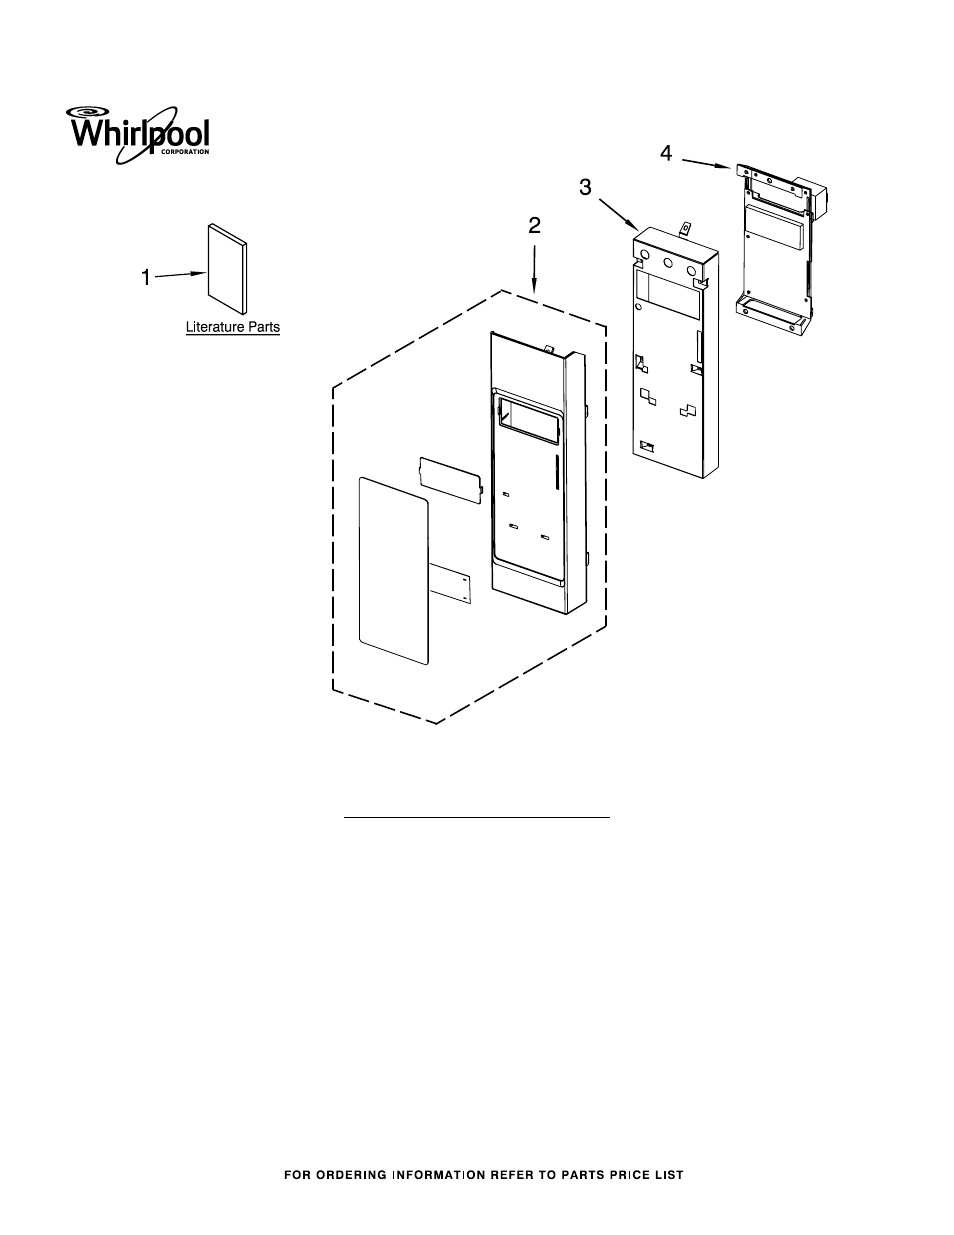 Whirlpool Wmh31017as User Manual 7 Pages Control Panel Circuit Diagram And Parts List For Sharp Microwaveparts